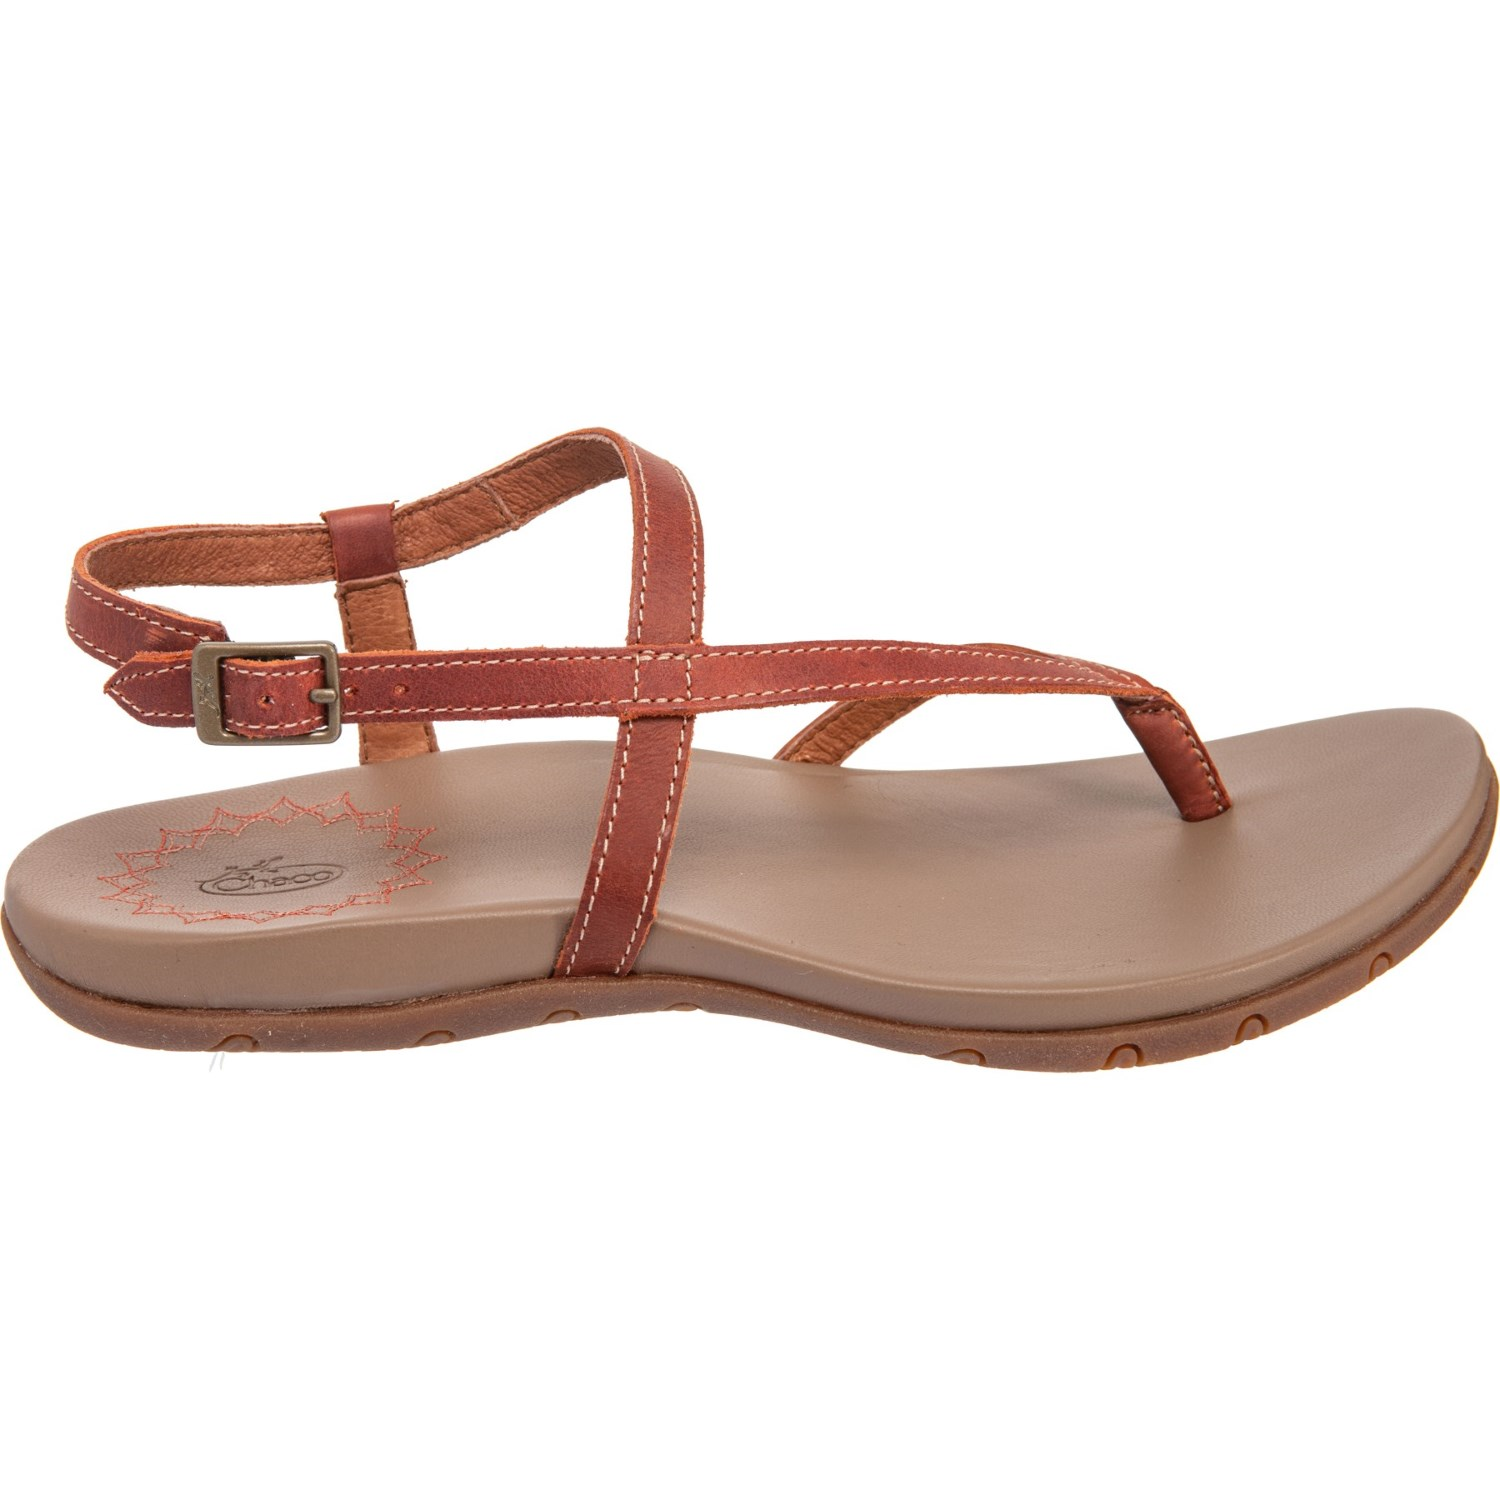 8dabe28bd29 Chaco Rowan Thong Sandals (For Women) - Save 47%